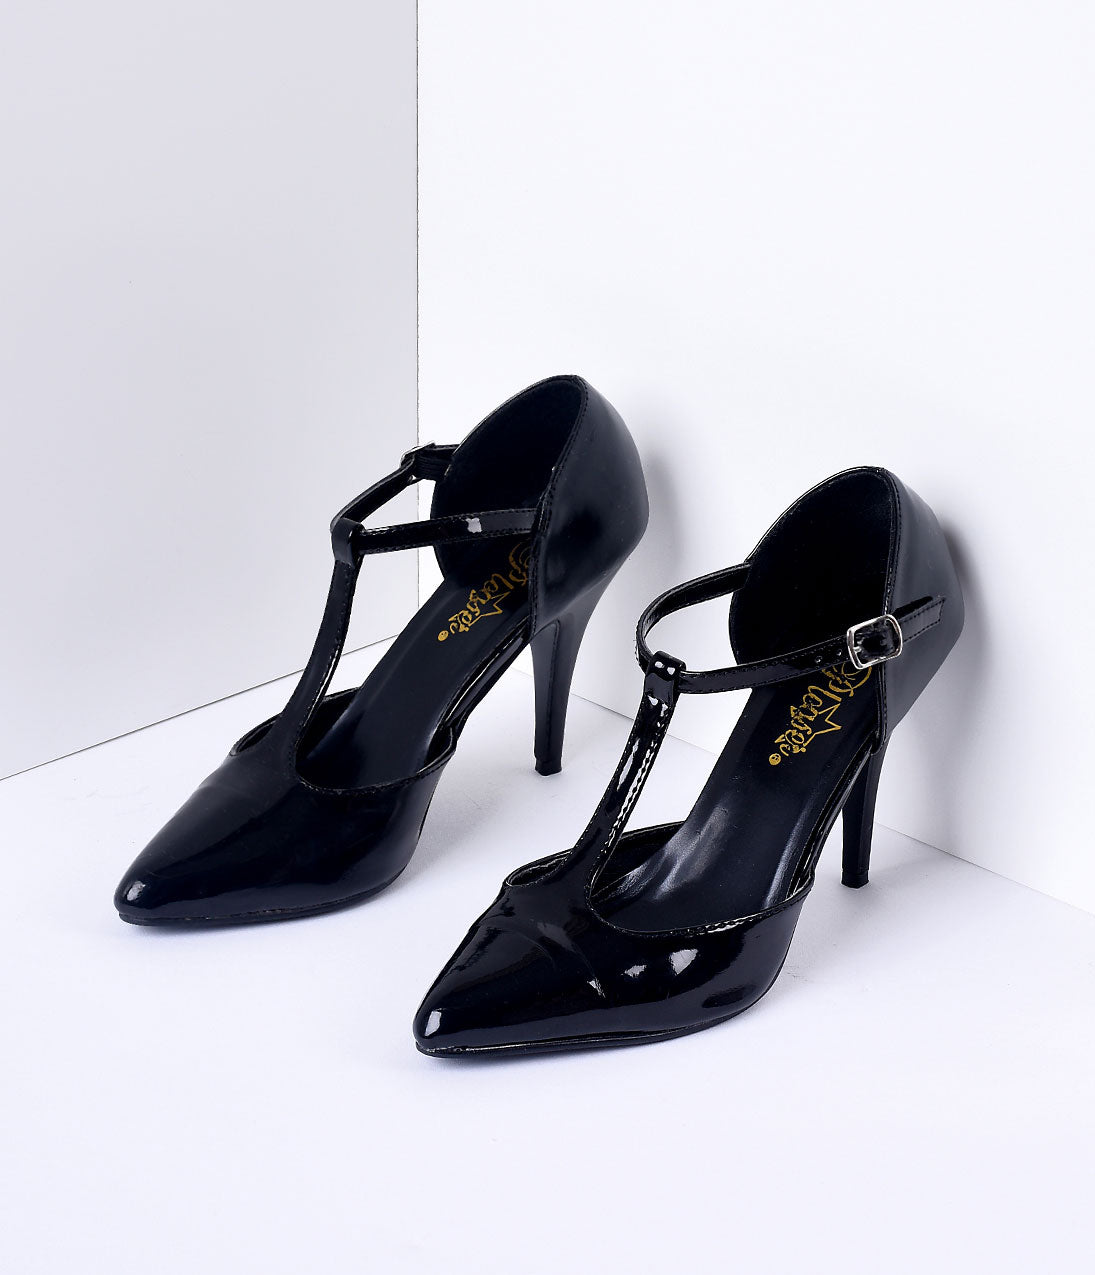 1920s Style Shoes 1920S Style Black T-Strap Heels $68.00 AT vintagedancer.com